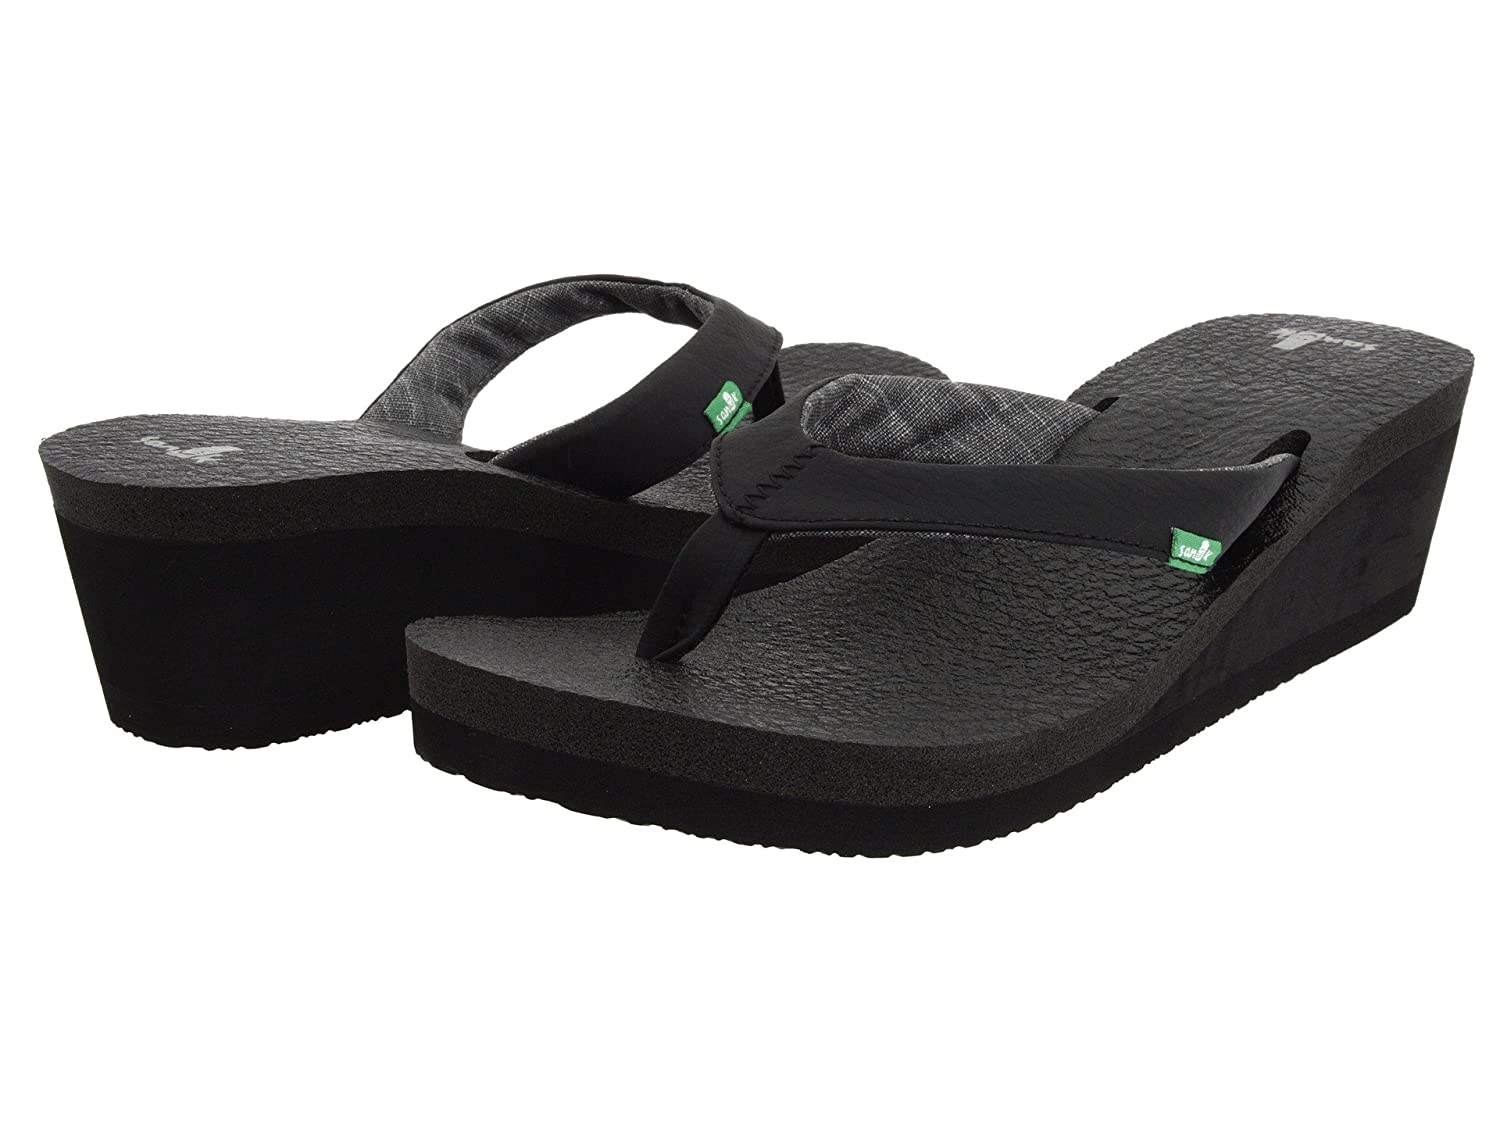 7eec383890a1 Sanuk Women s Yoga Mat Wedge Flip Flops Black  Amazon.co.uk  Shoes   Bags